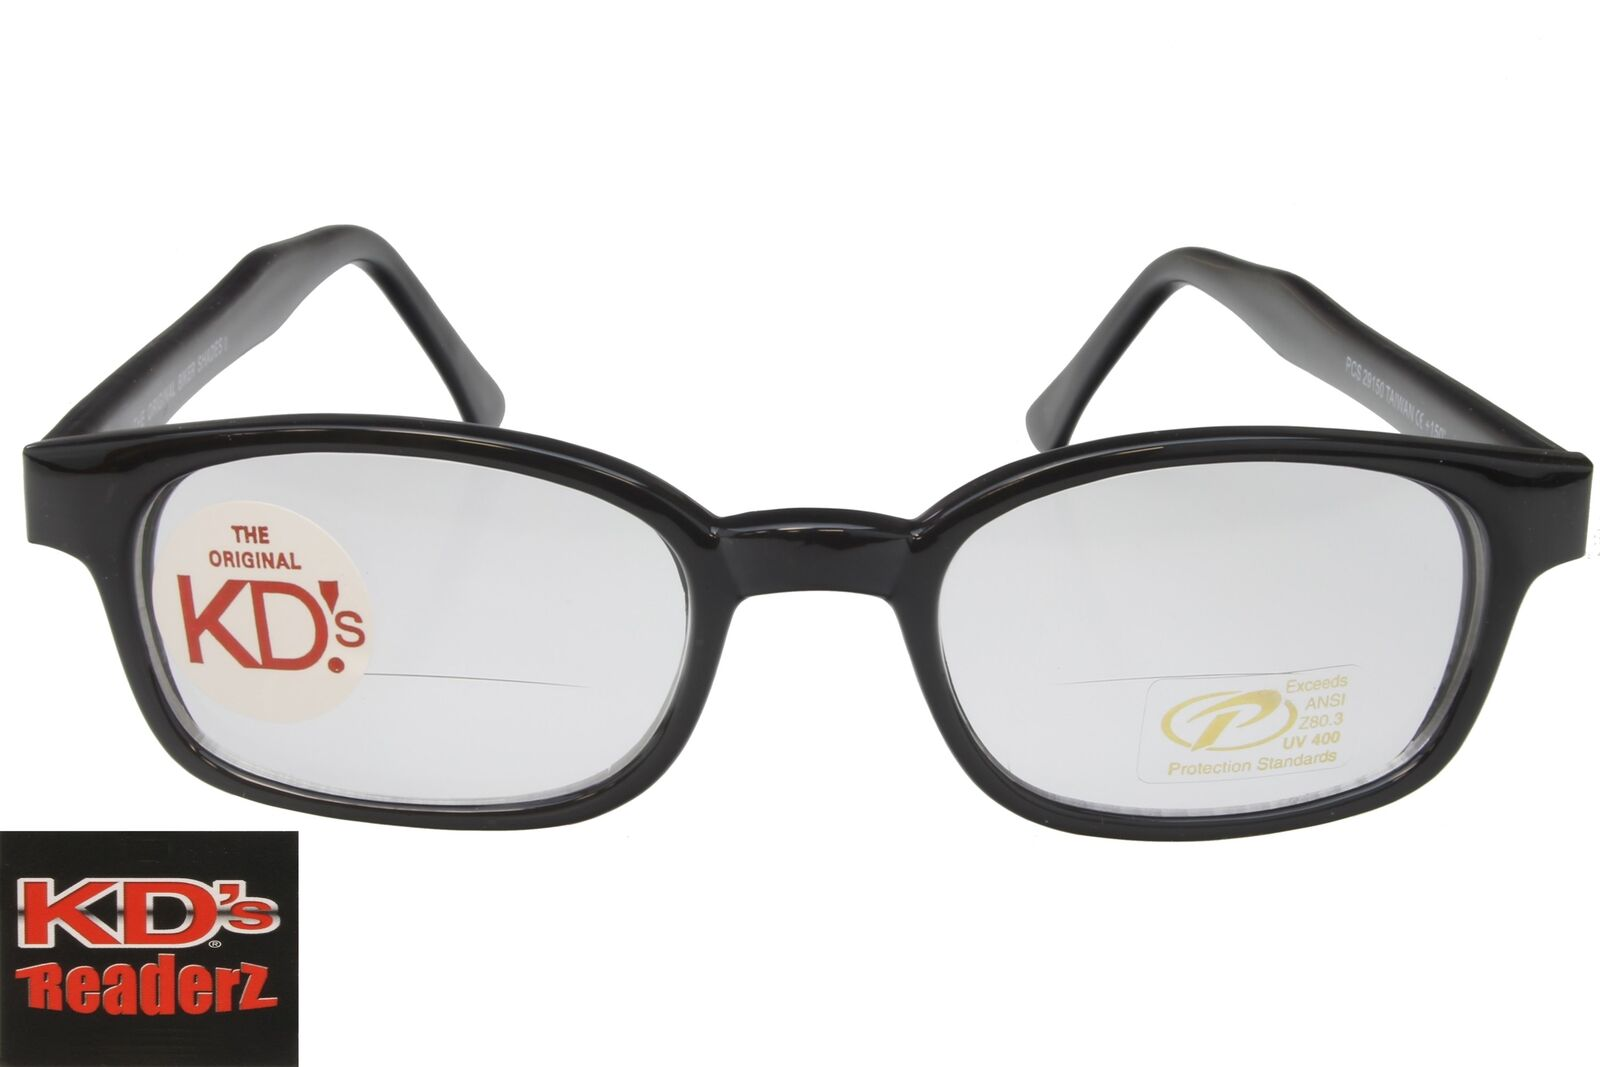 e628be48744 GogglesandGlasses is a veteran owned independent retailer of hand selected  basic eyewear. With over 14 years in business